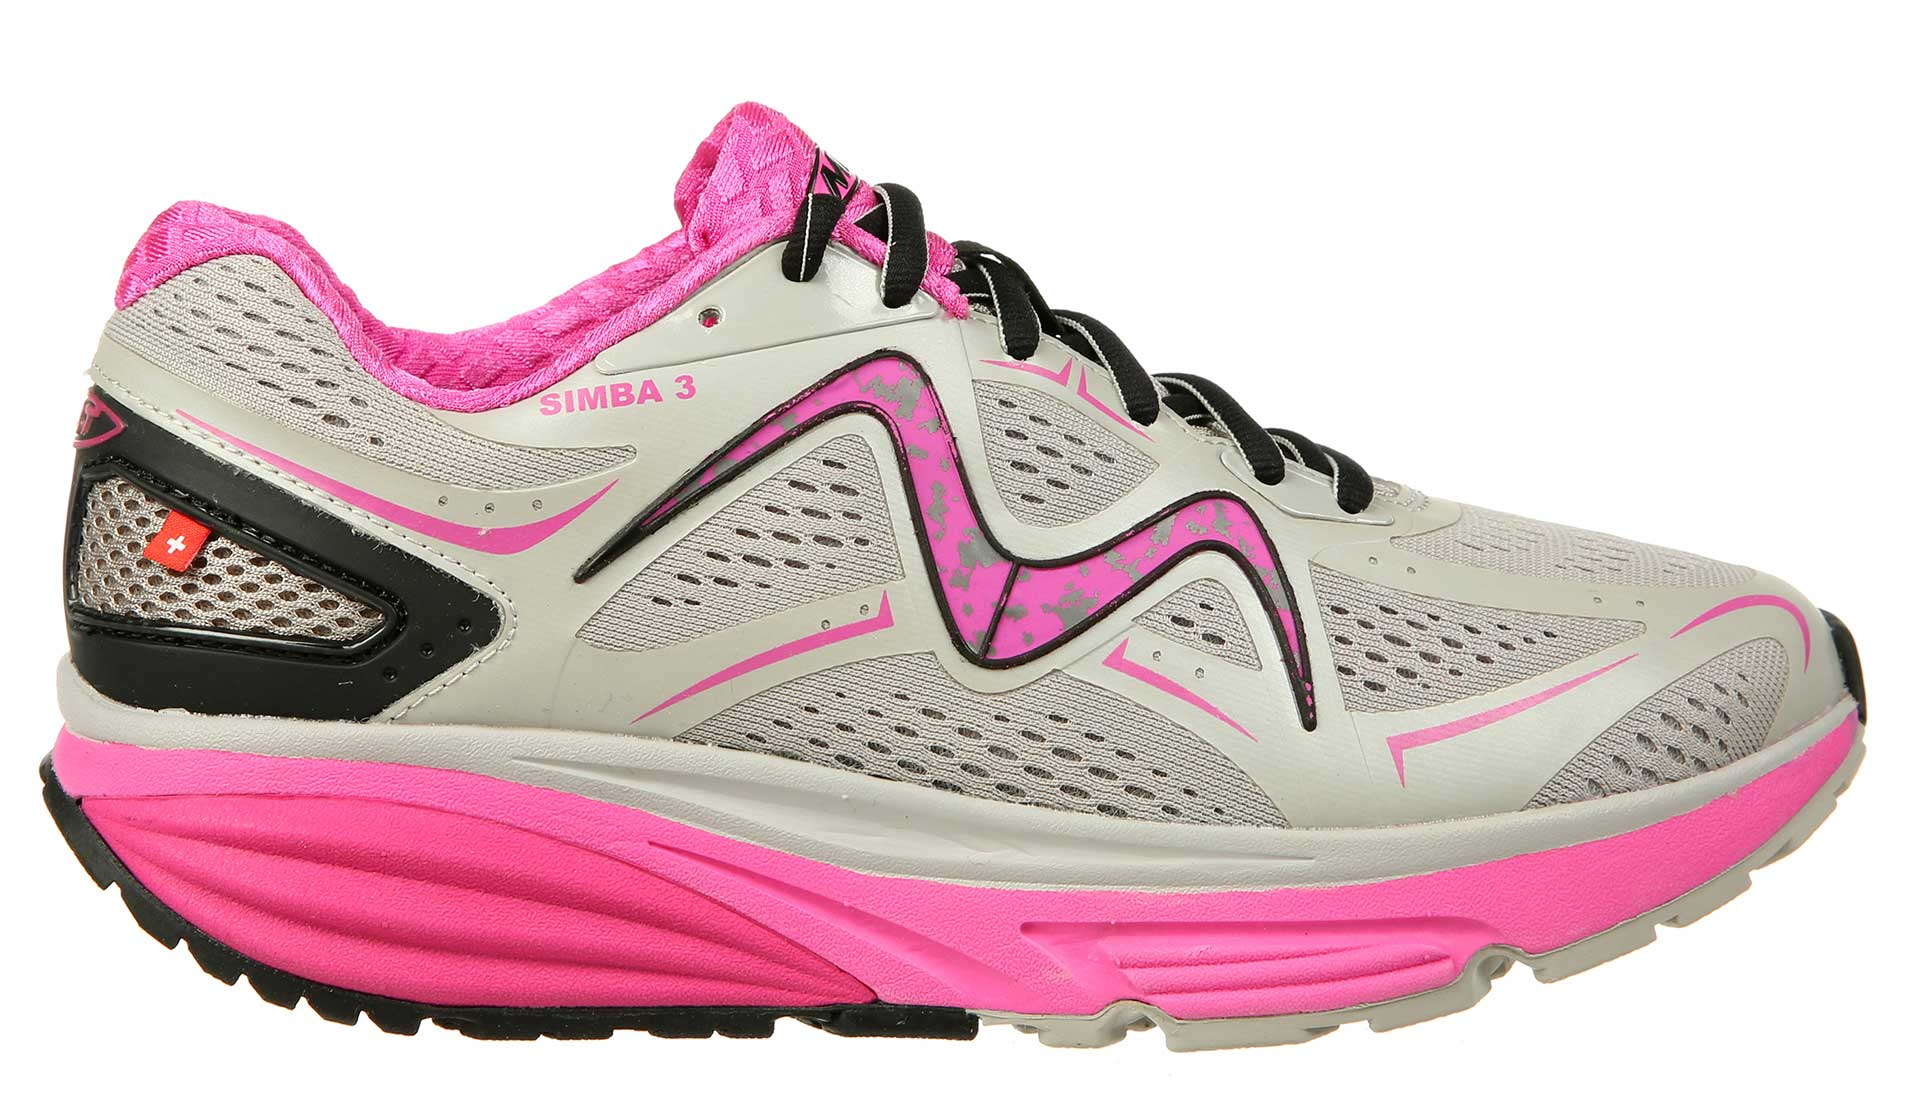 f5841fa4394a MBT Shoes Women s Simba 3 Endurance Running Shoes - 702028 - The MBT Simba  is an athletic fitness running shoe built to increase your active lifestyle  and ...